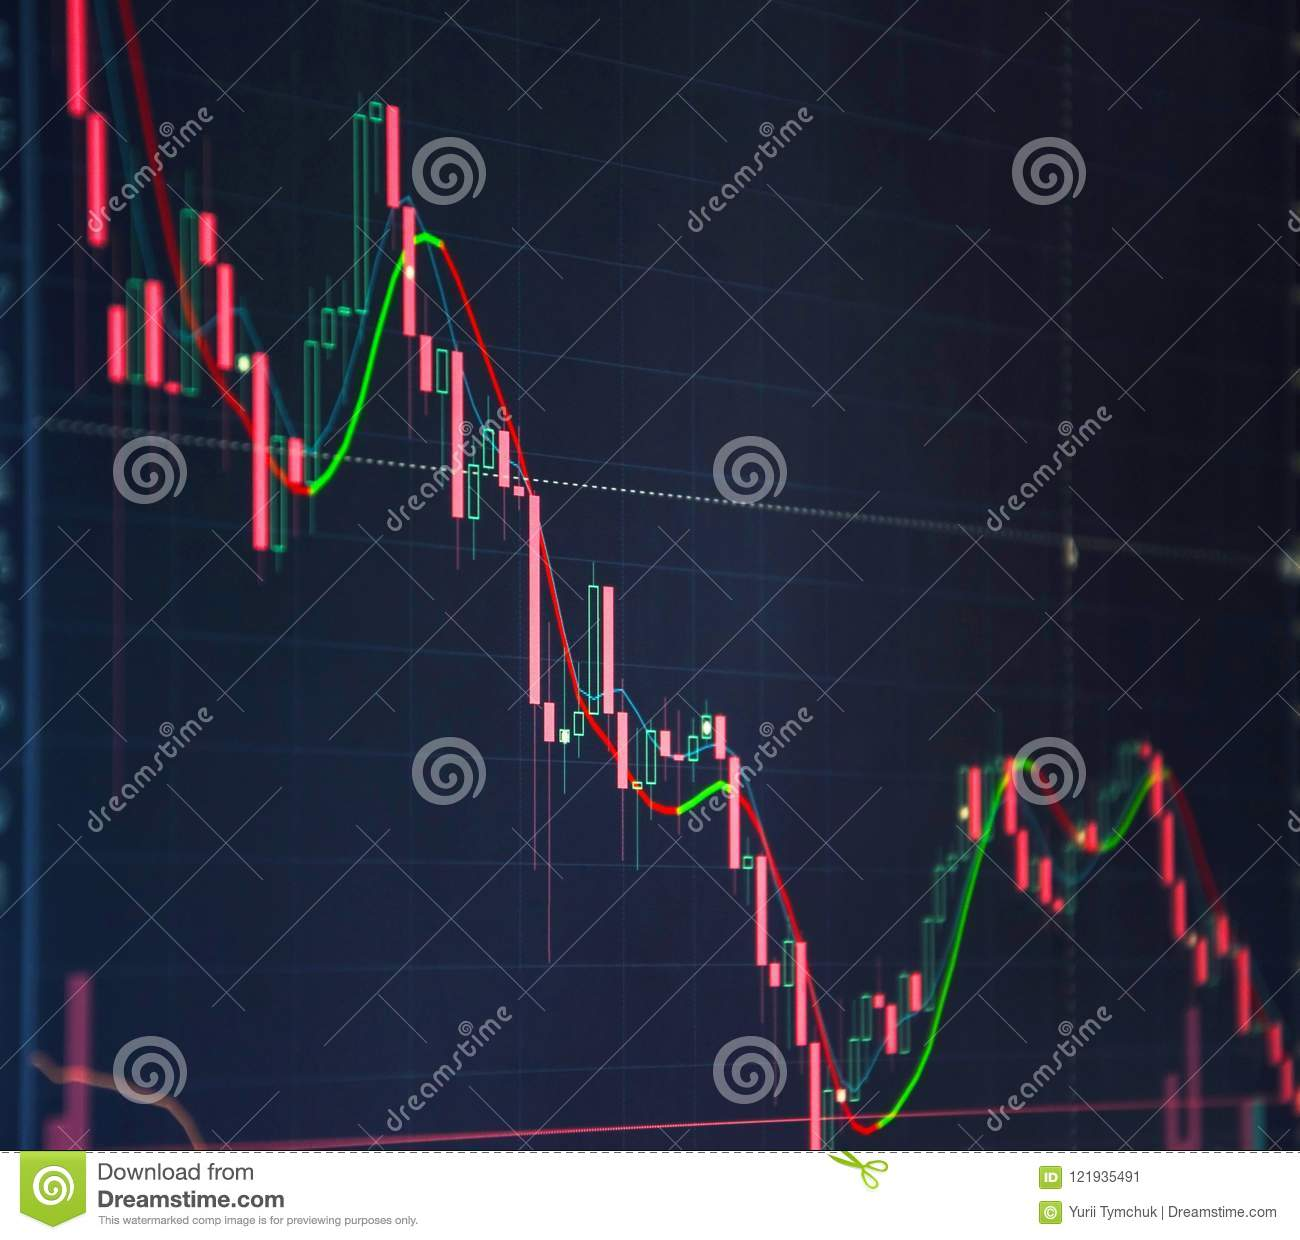 Financial data on a monitor as finance data concept. Share price candlestick chart